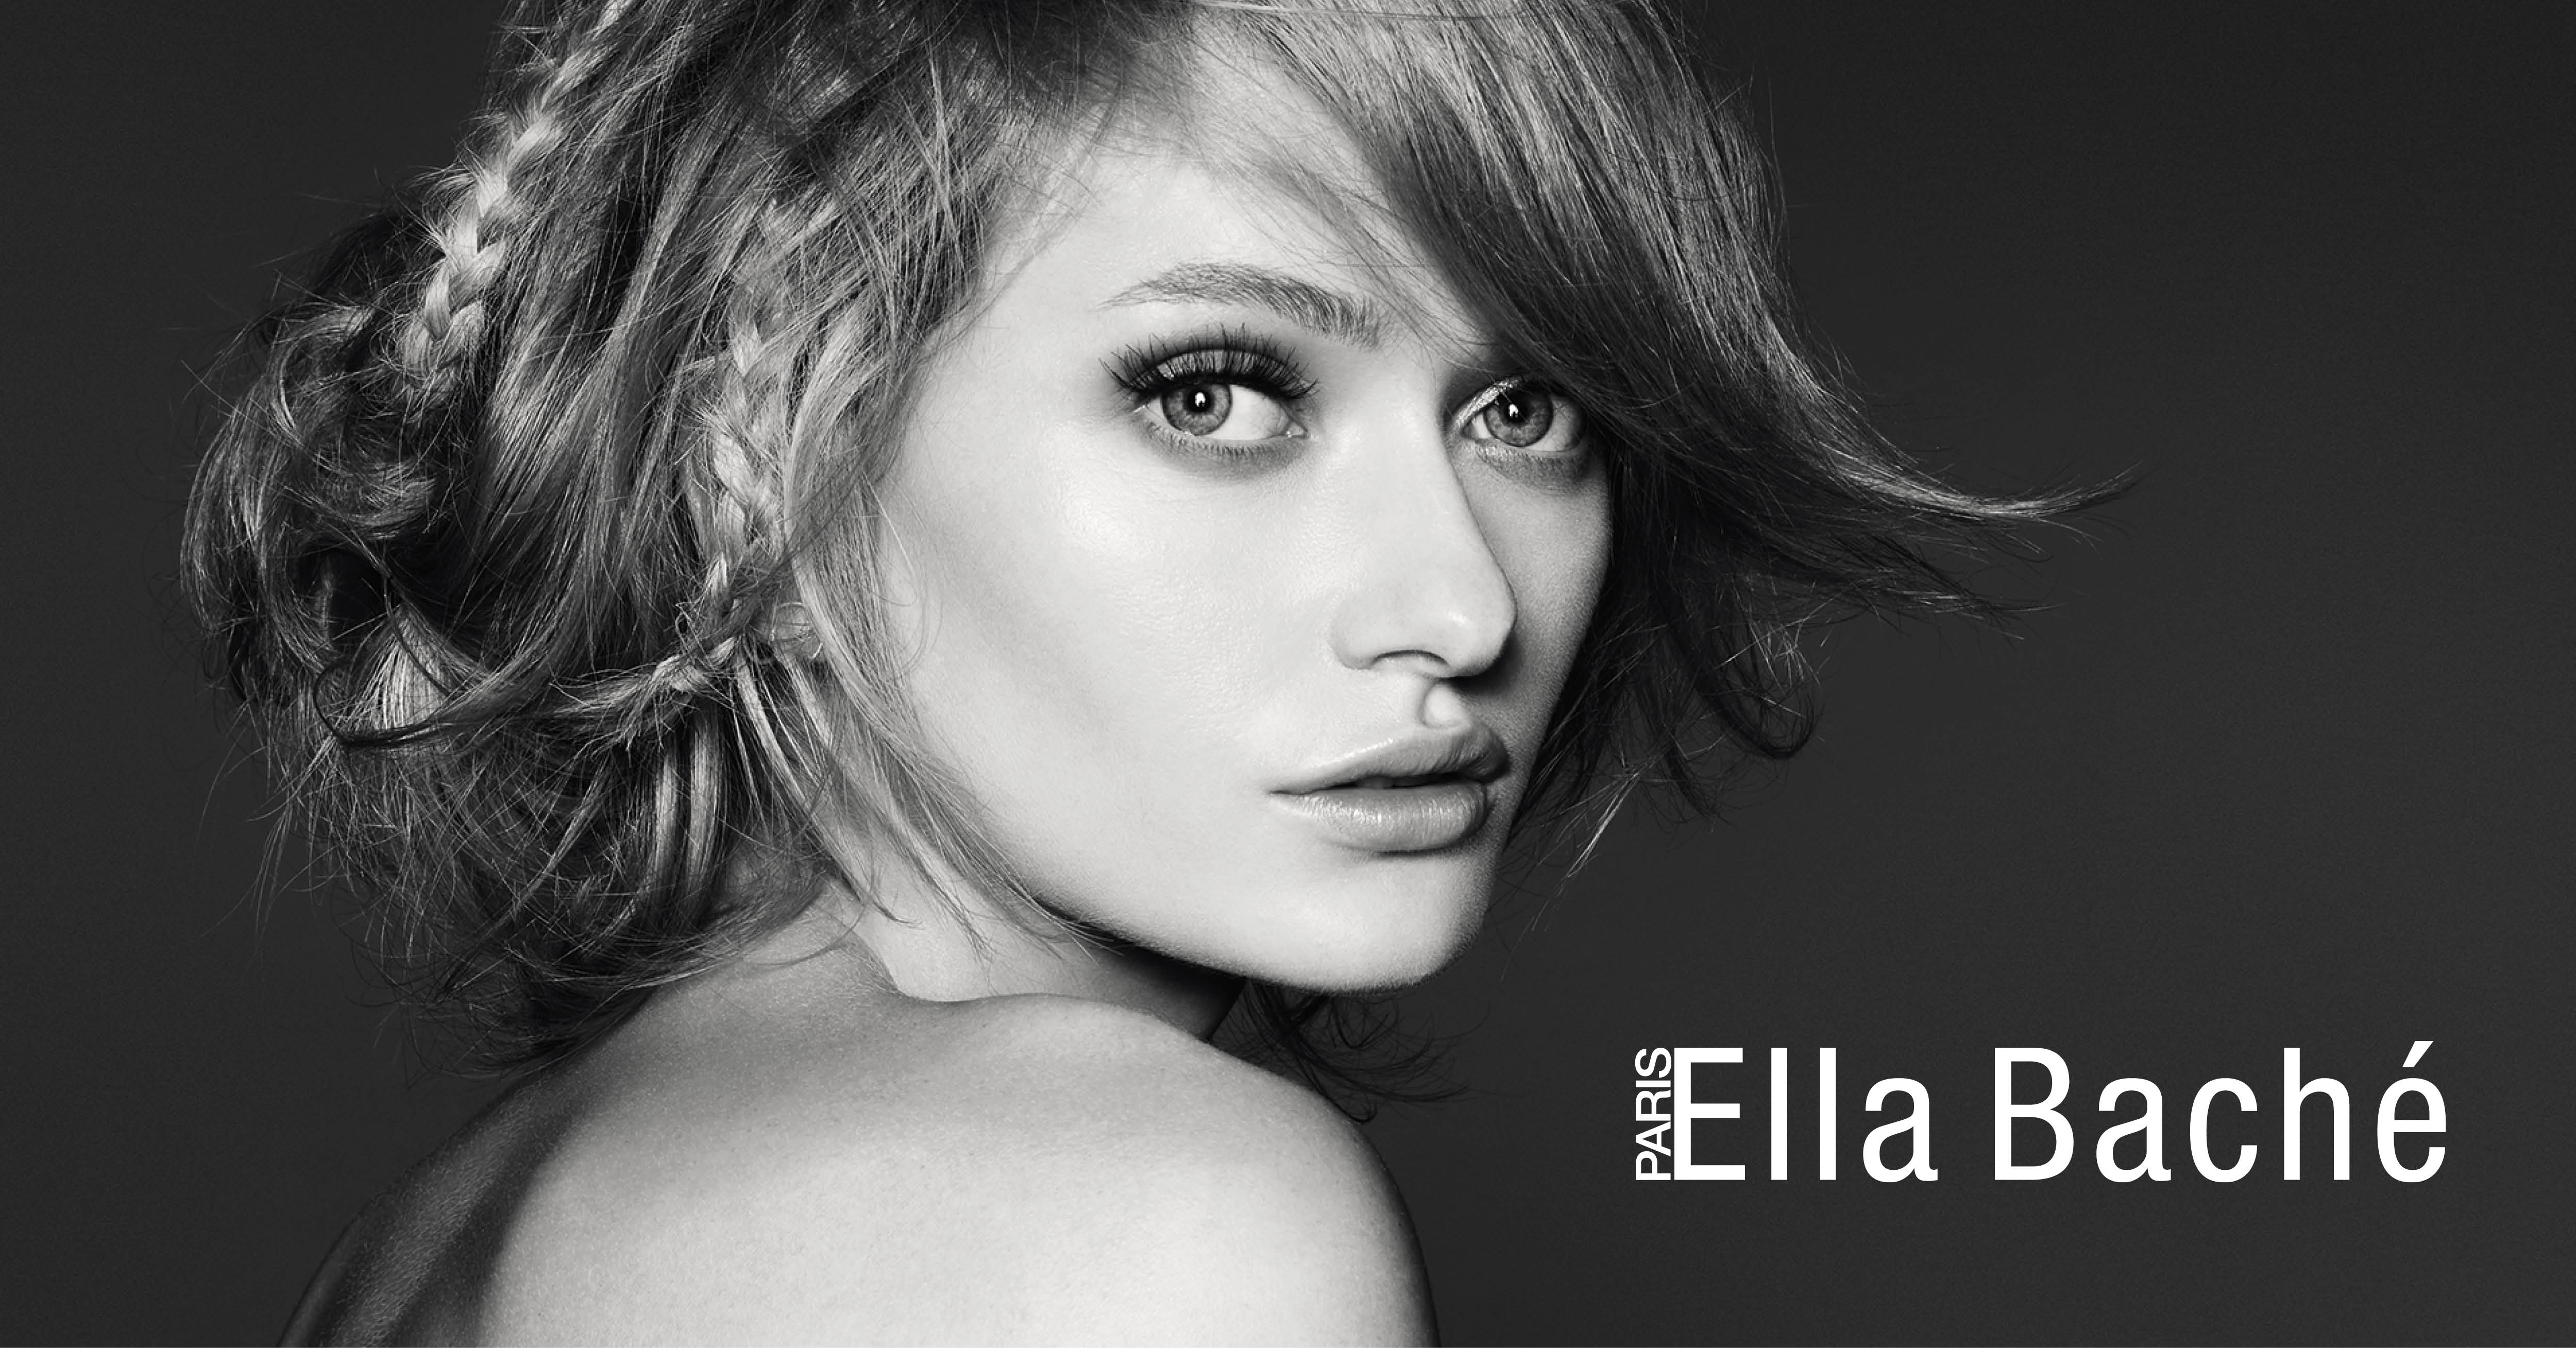 Ella Baché Beauty Salon | NEW Franchise Opportunity & site |Mosman NSW